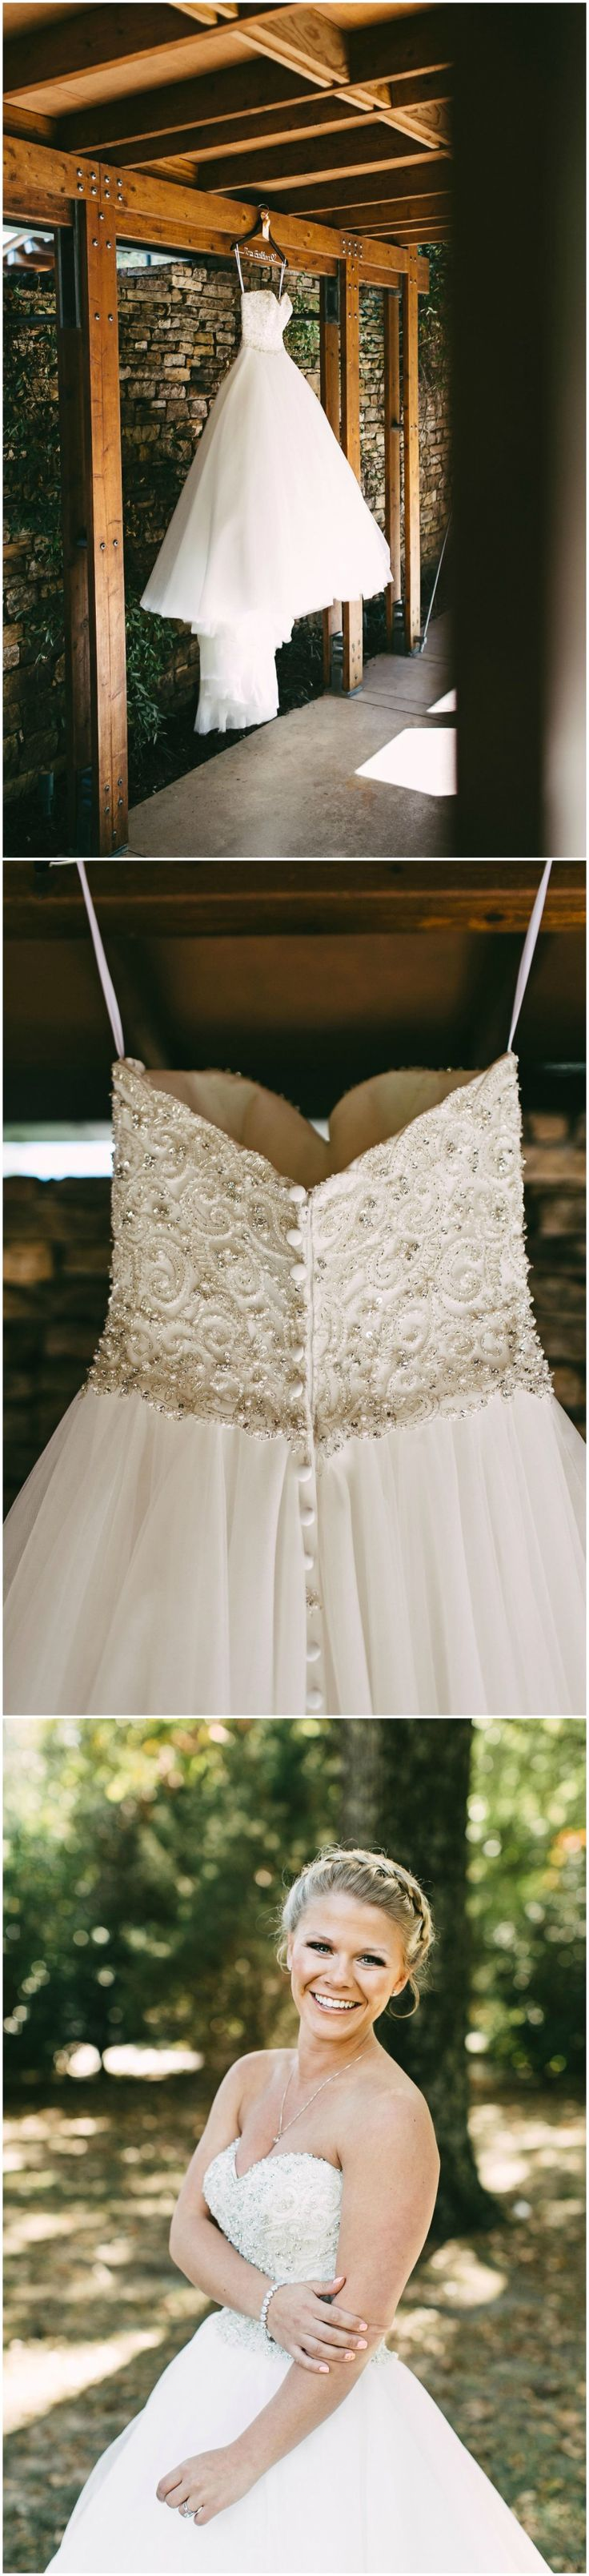 Strapless wedding gown, beaded bodice, dress fit for a princess // Kelly Ginn Photography